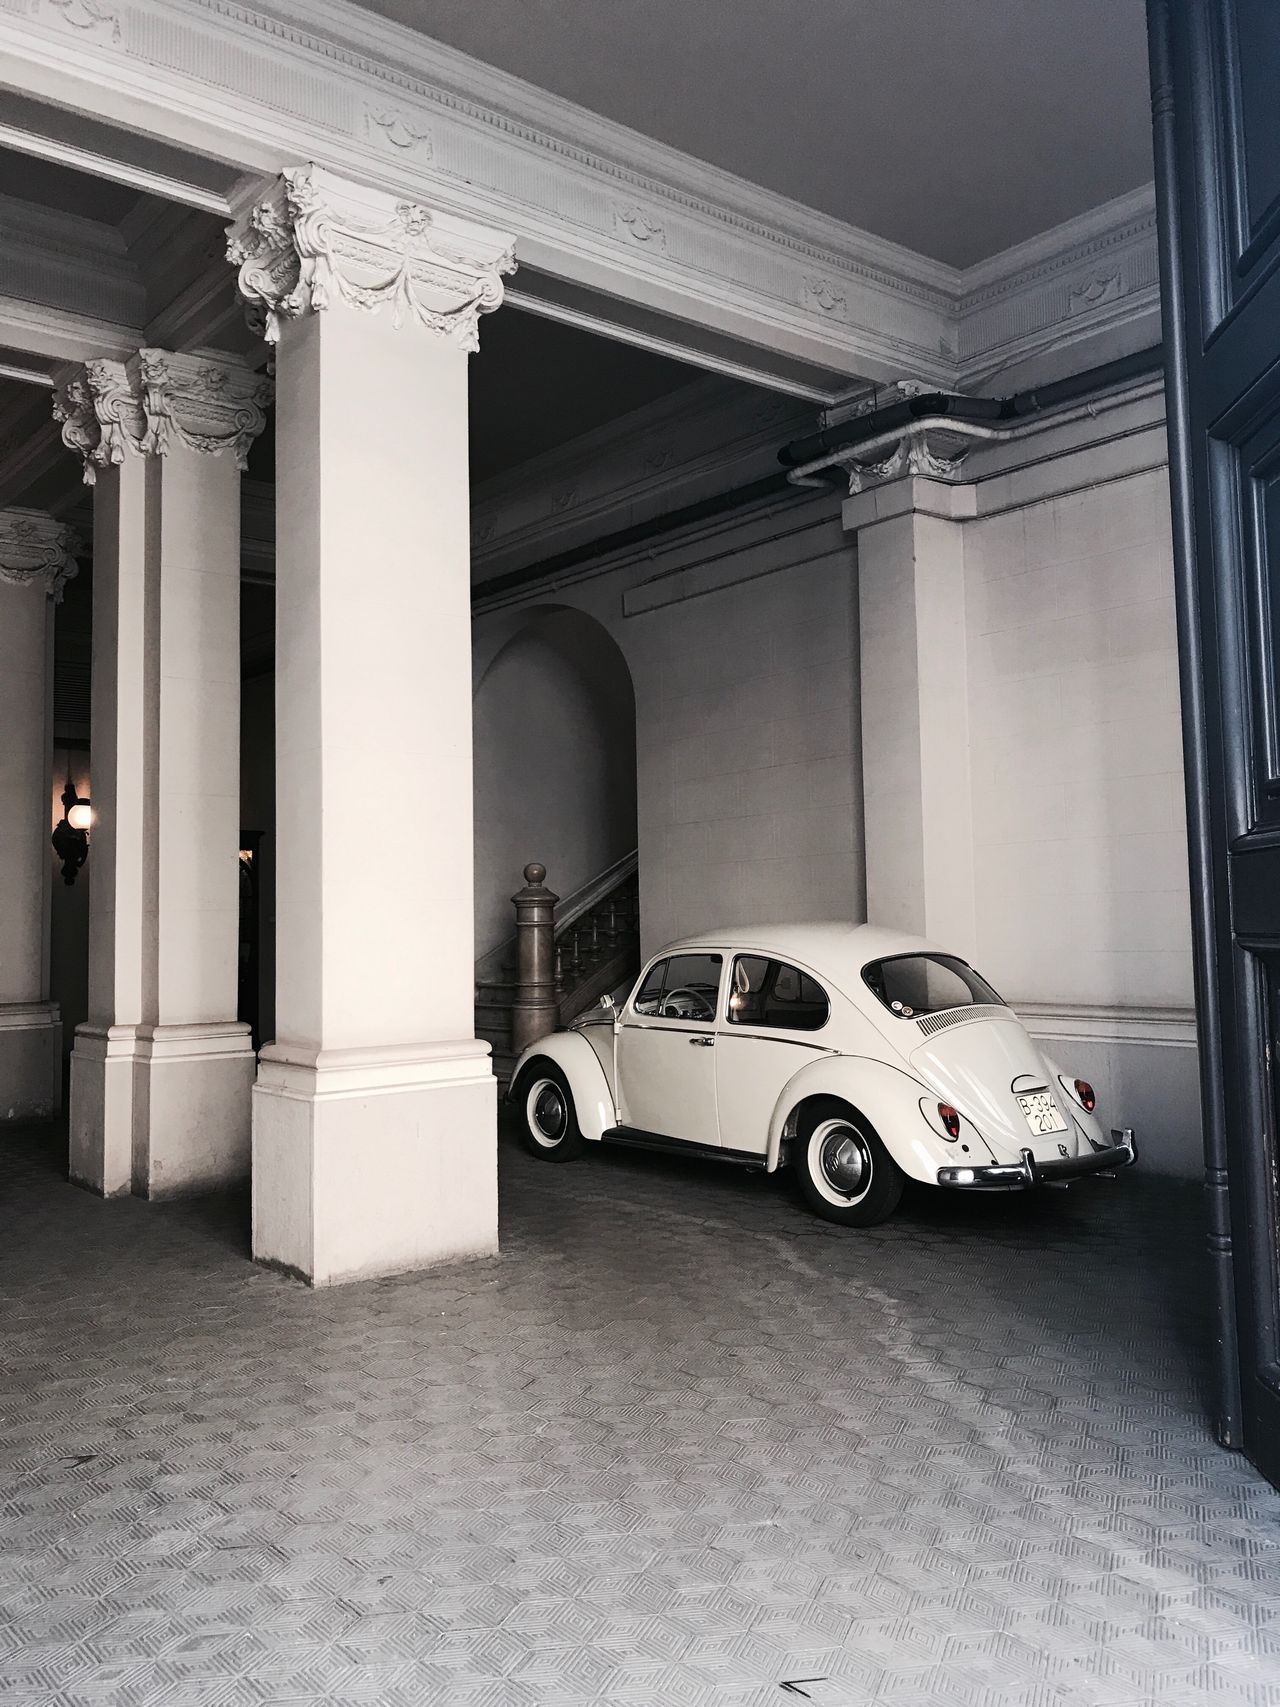 Car Architectural Column Indoors  Built Structure Architecture Day No People Volkswagen Cars Garage Retro Barcelona Barcelona, Spain